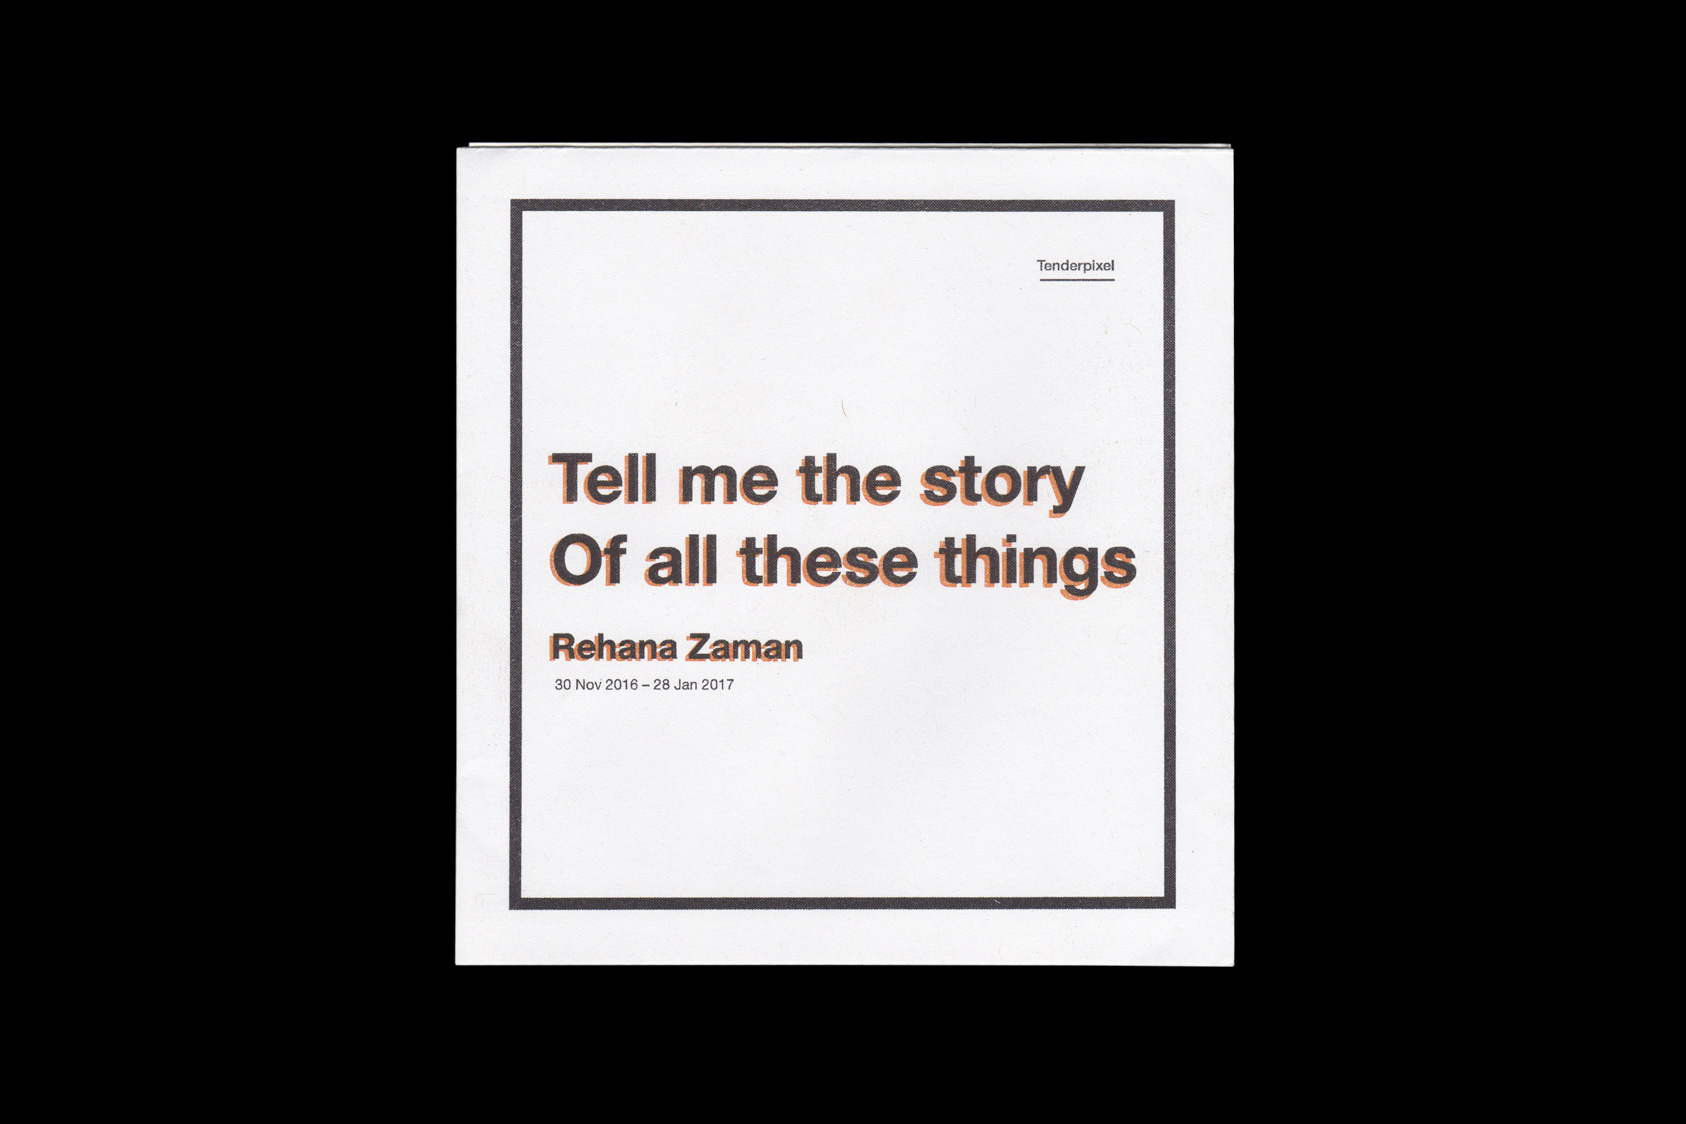 Tell me the story Of all these things - a publication for and Rehana Zaman Tenderpixel and gallery, 2017 by the agency for emerging ideas